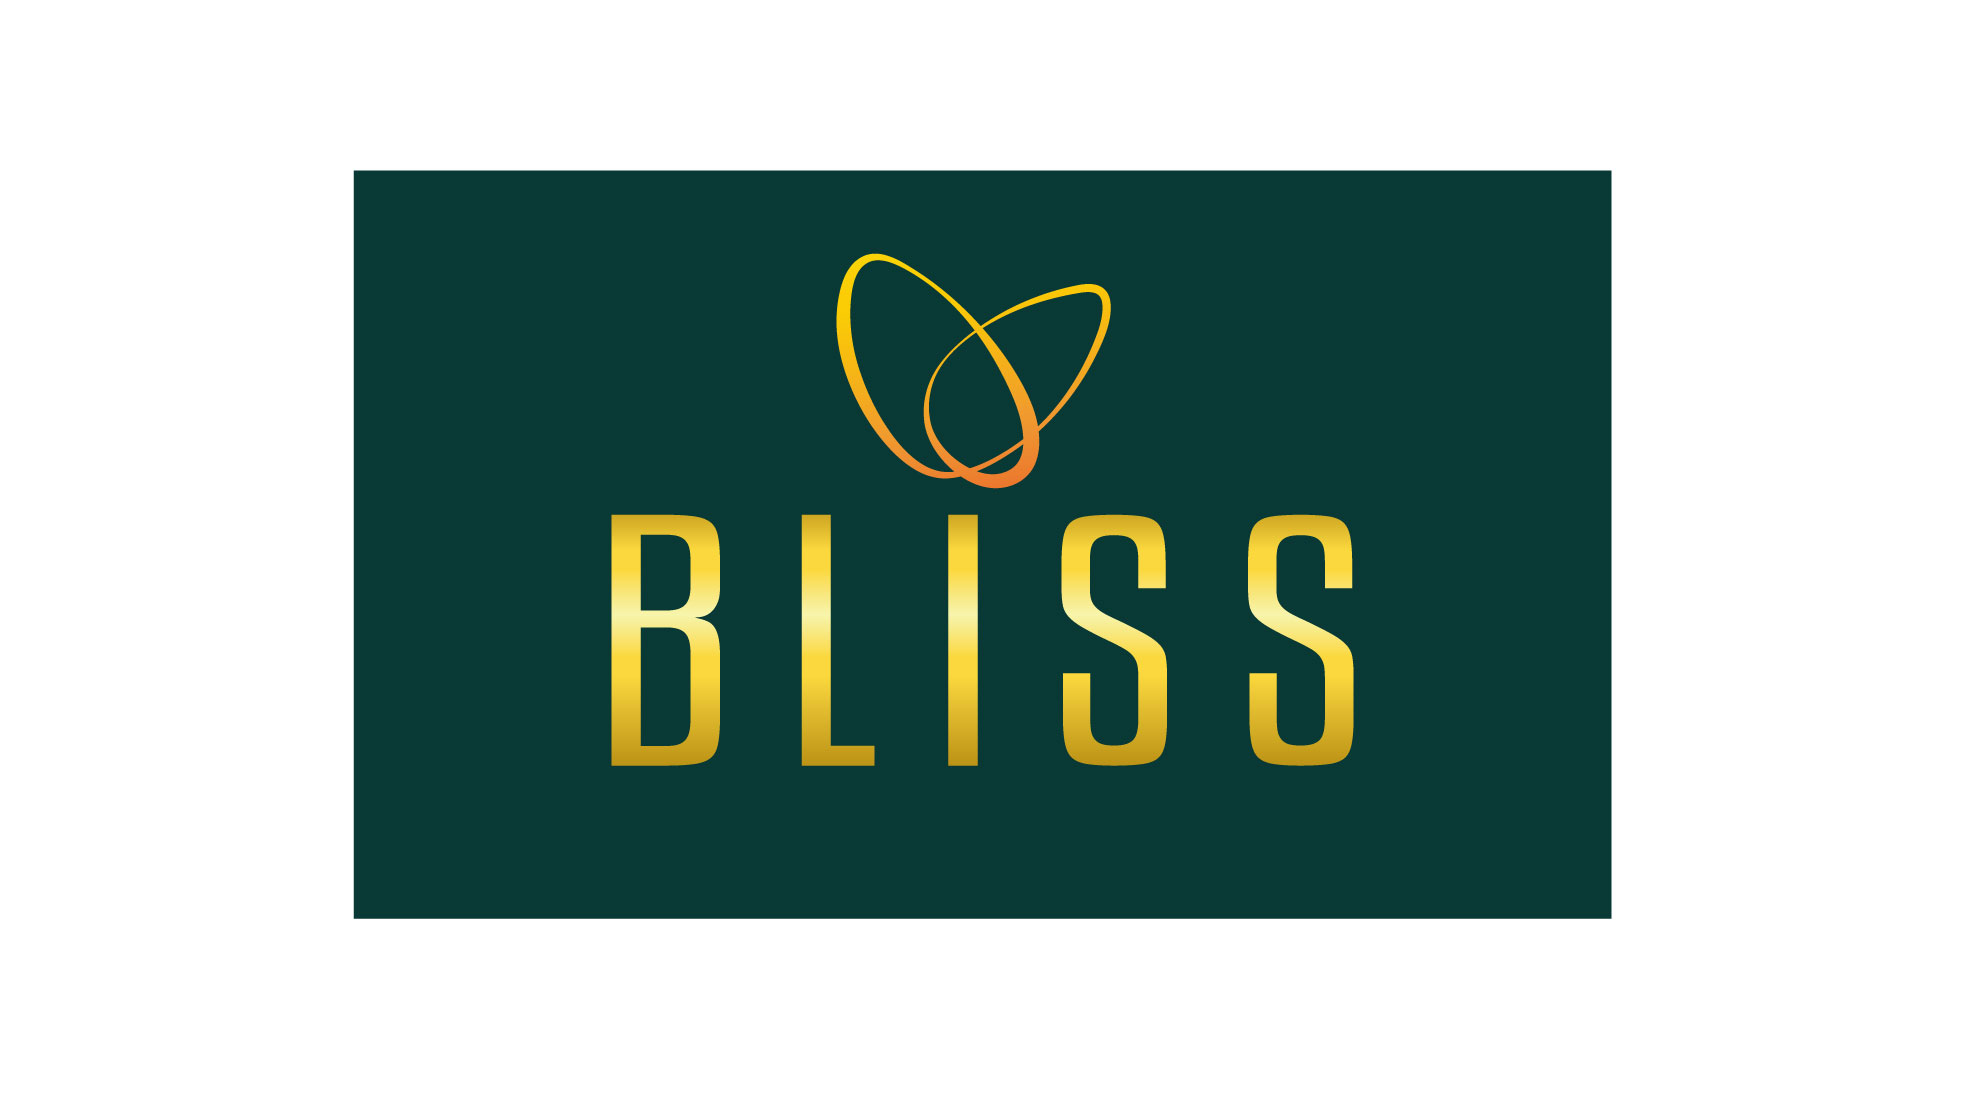 BLISS THONGLOR